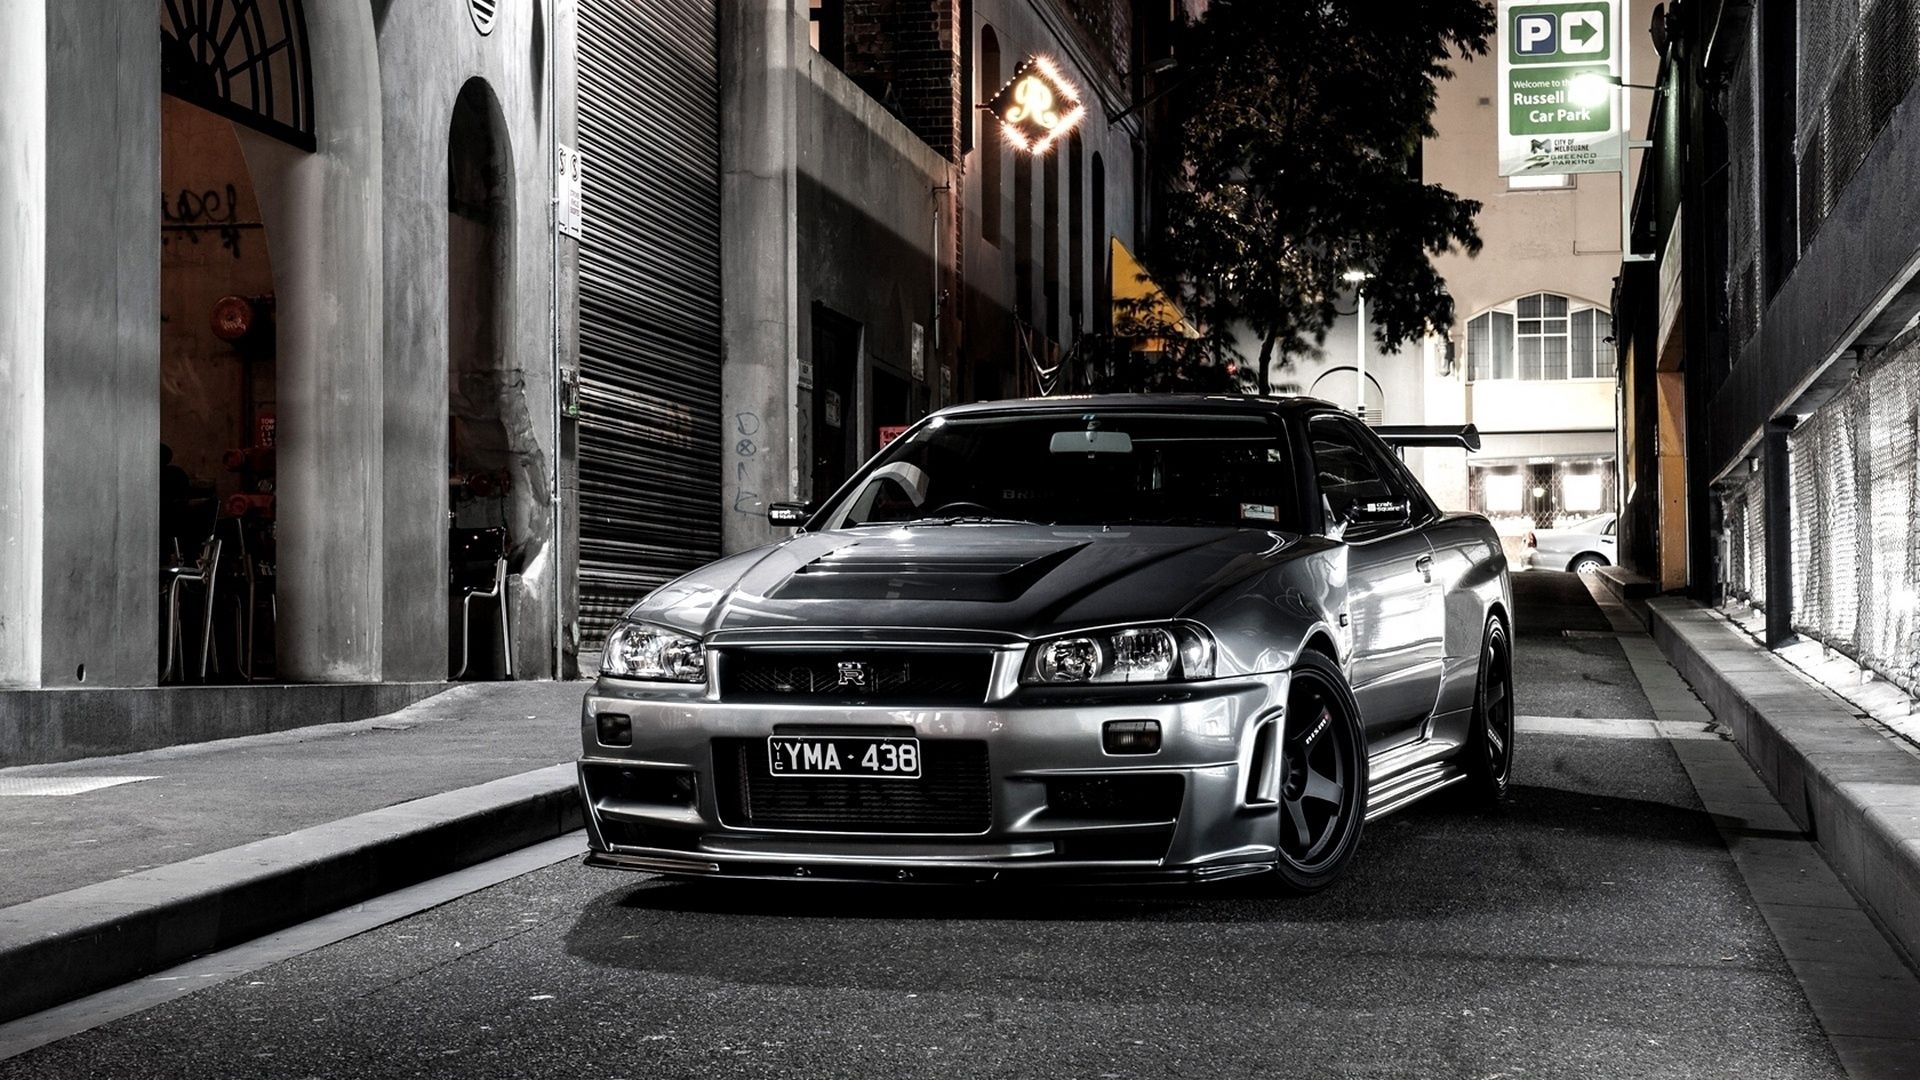 155470 download wallpaper Auto, Nissan, Cars, Grey, Street screensavers and pictures for free